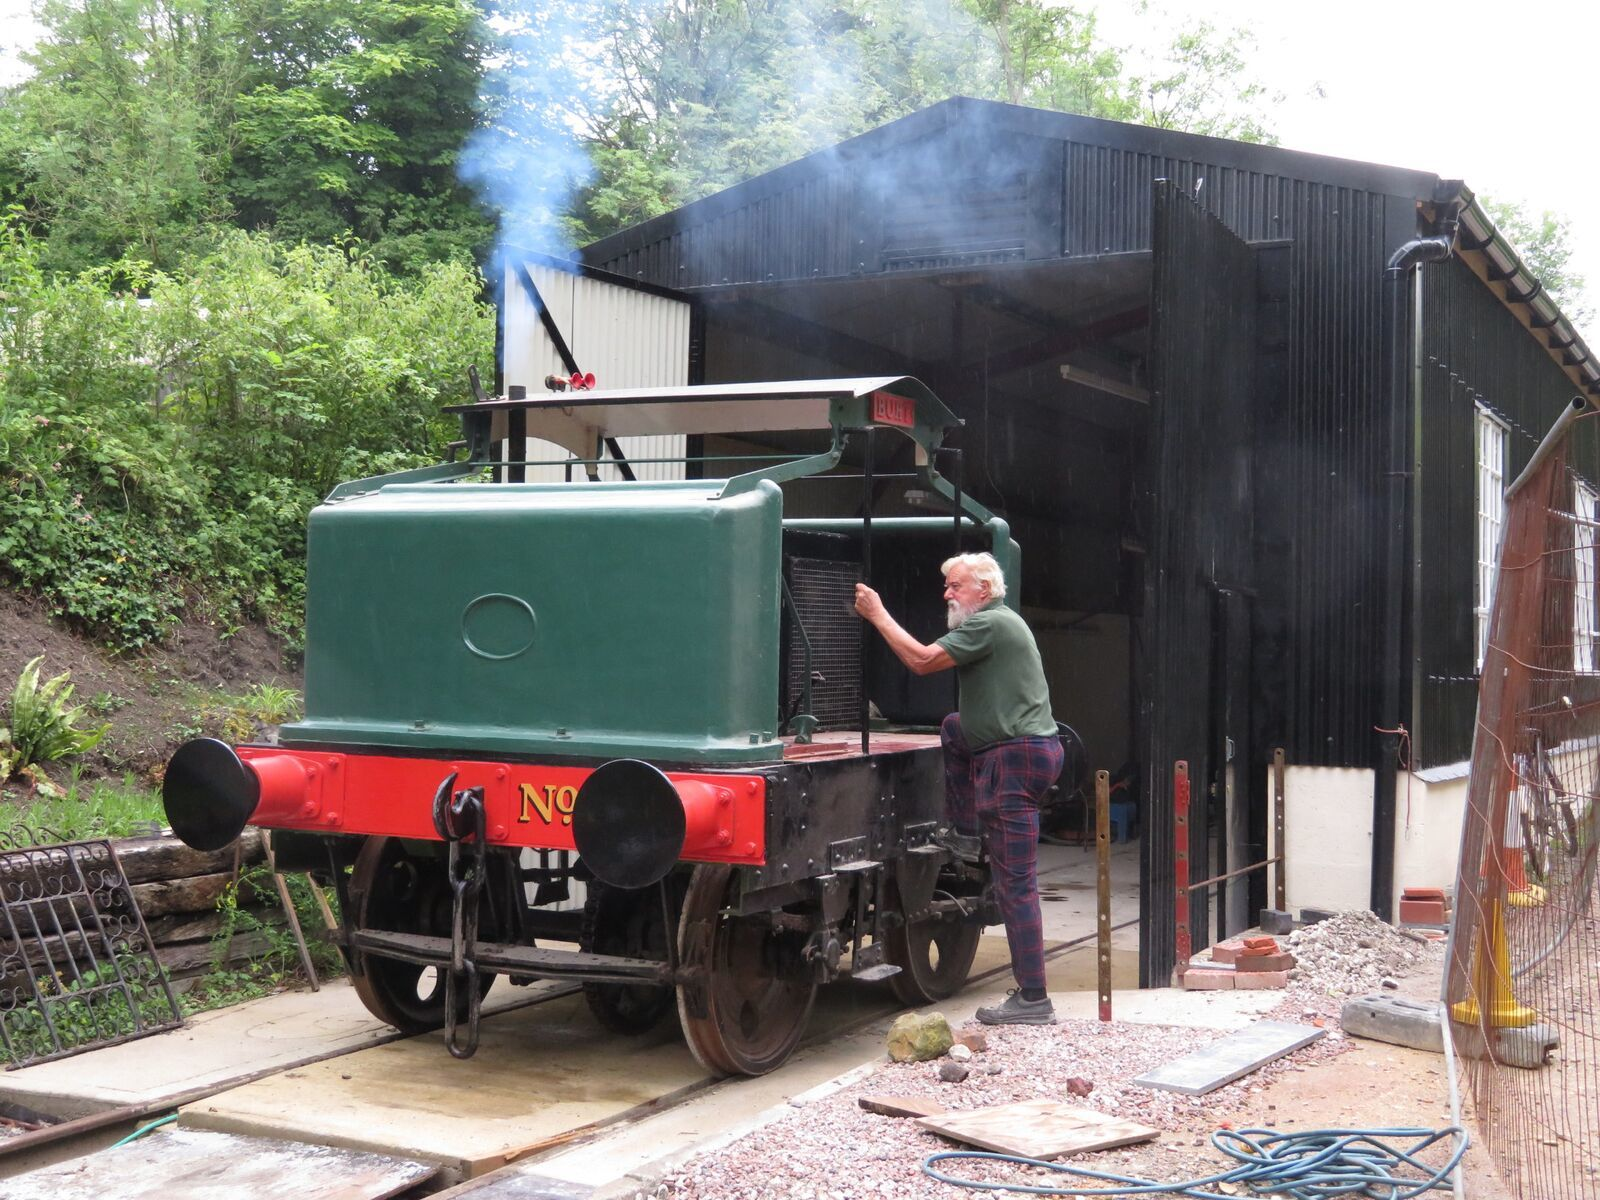 Amberley Museum: Rail Gala Saturday 8th and Sunday 9th July